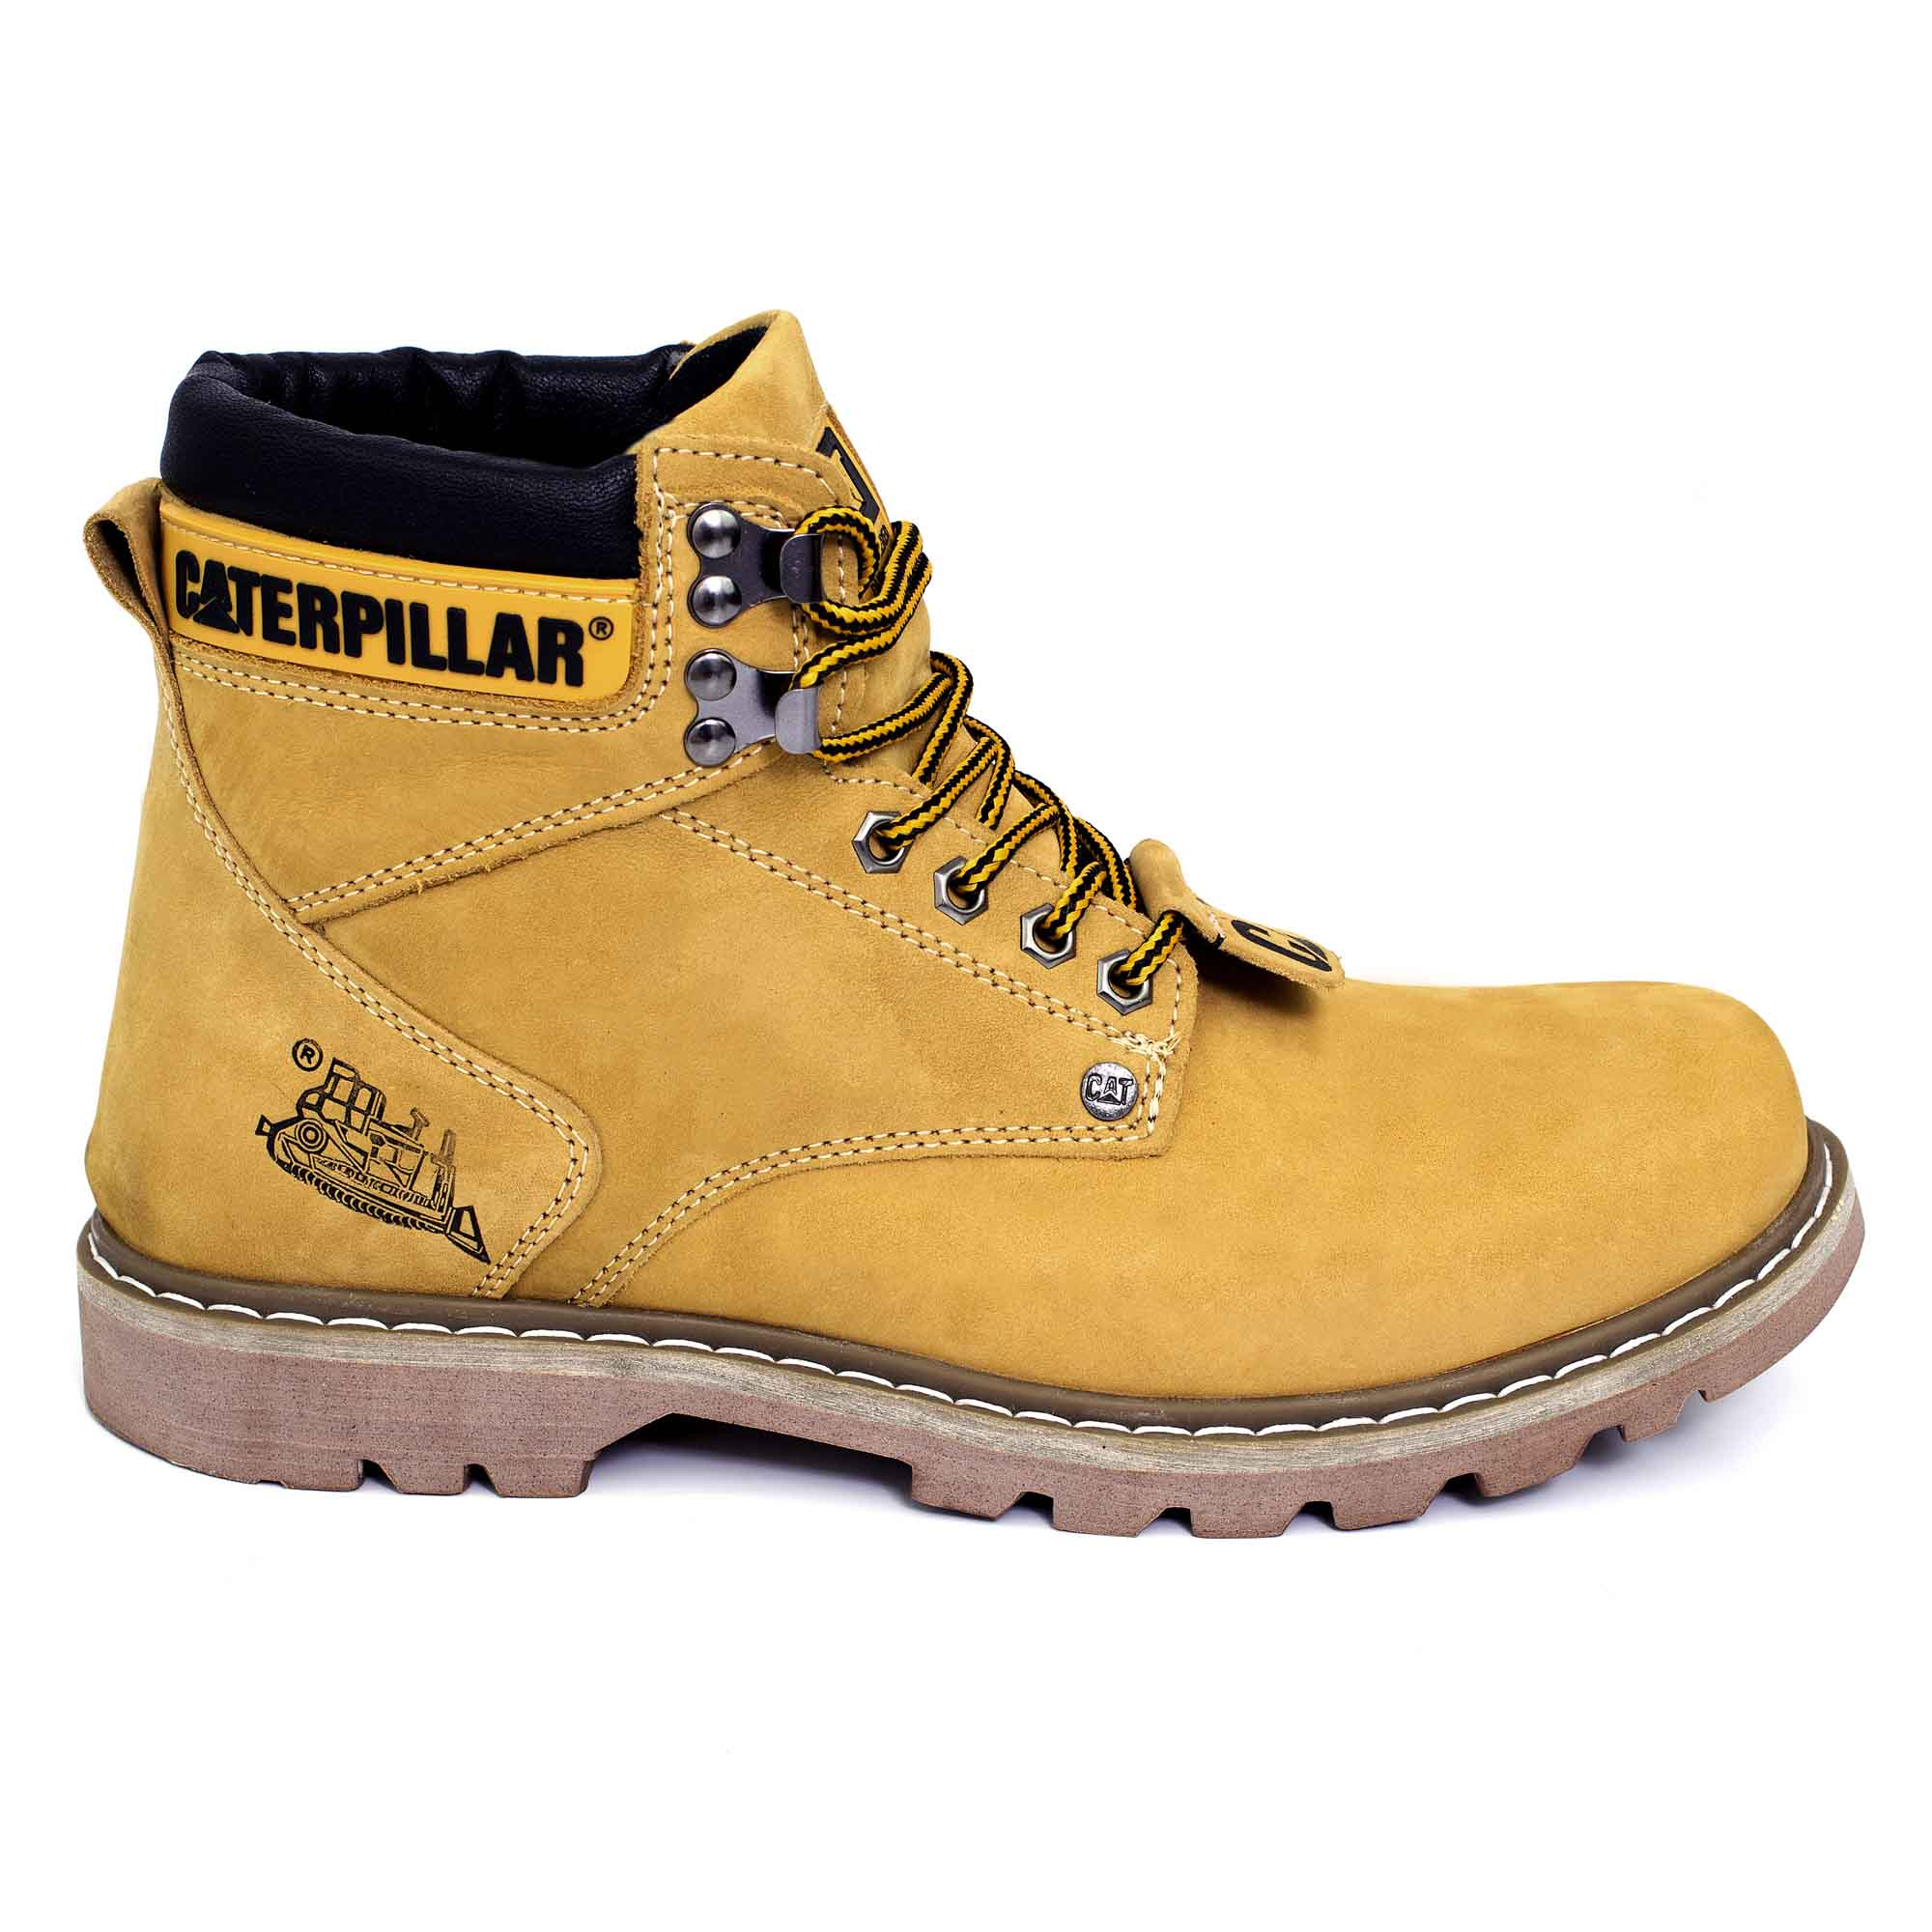 72fd14f7d43f6 Bota Coturno Caterpillar Second Shift Couro - Yellow